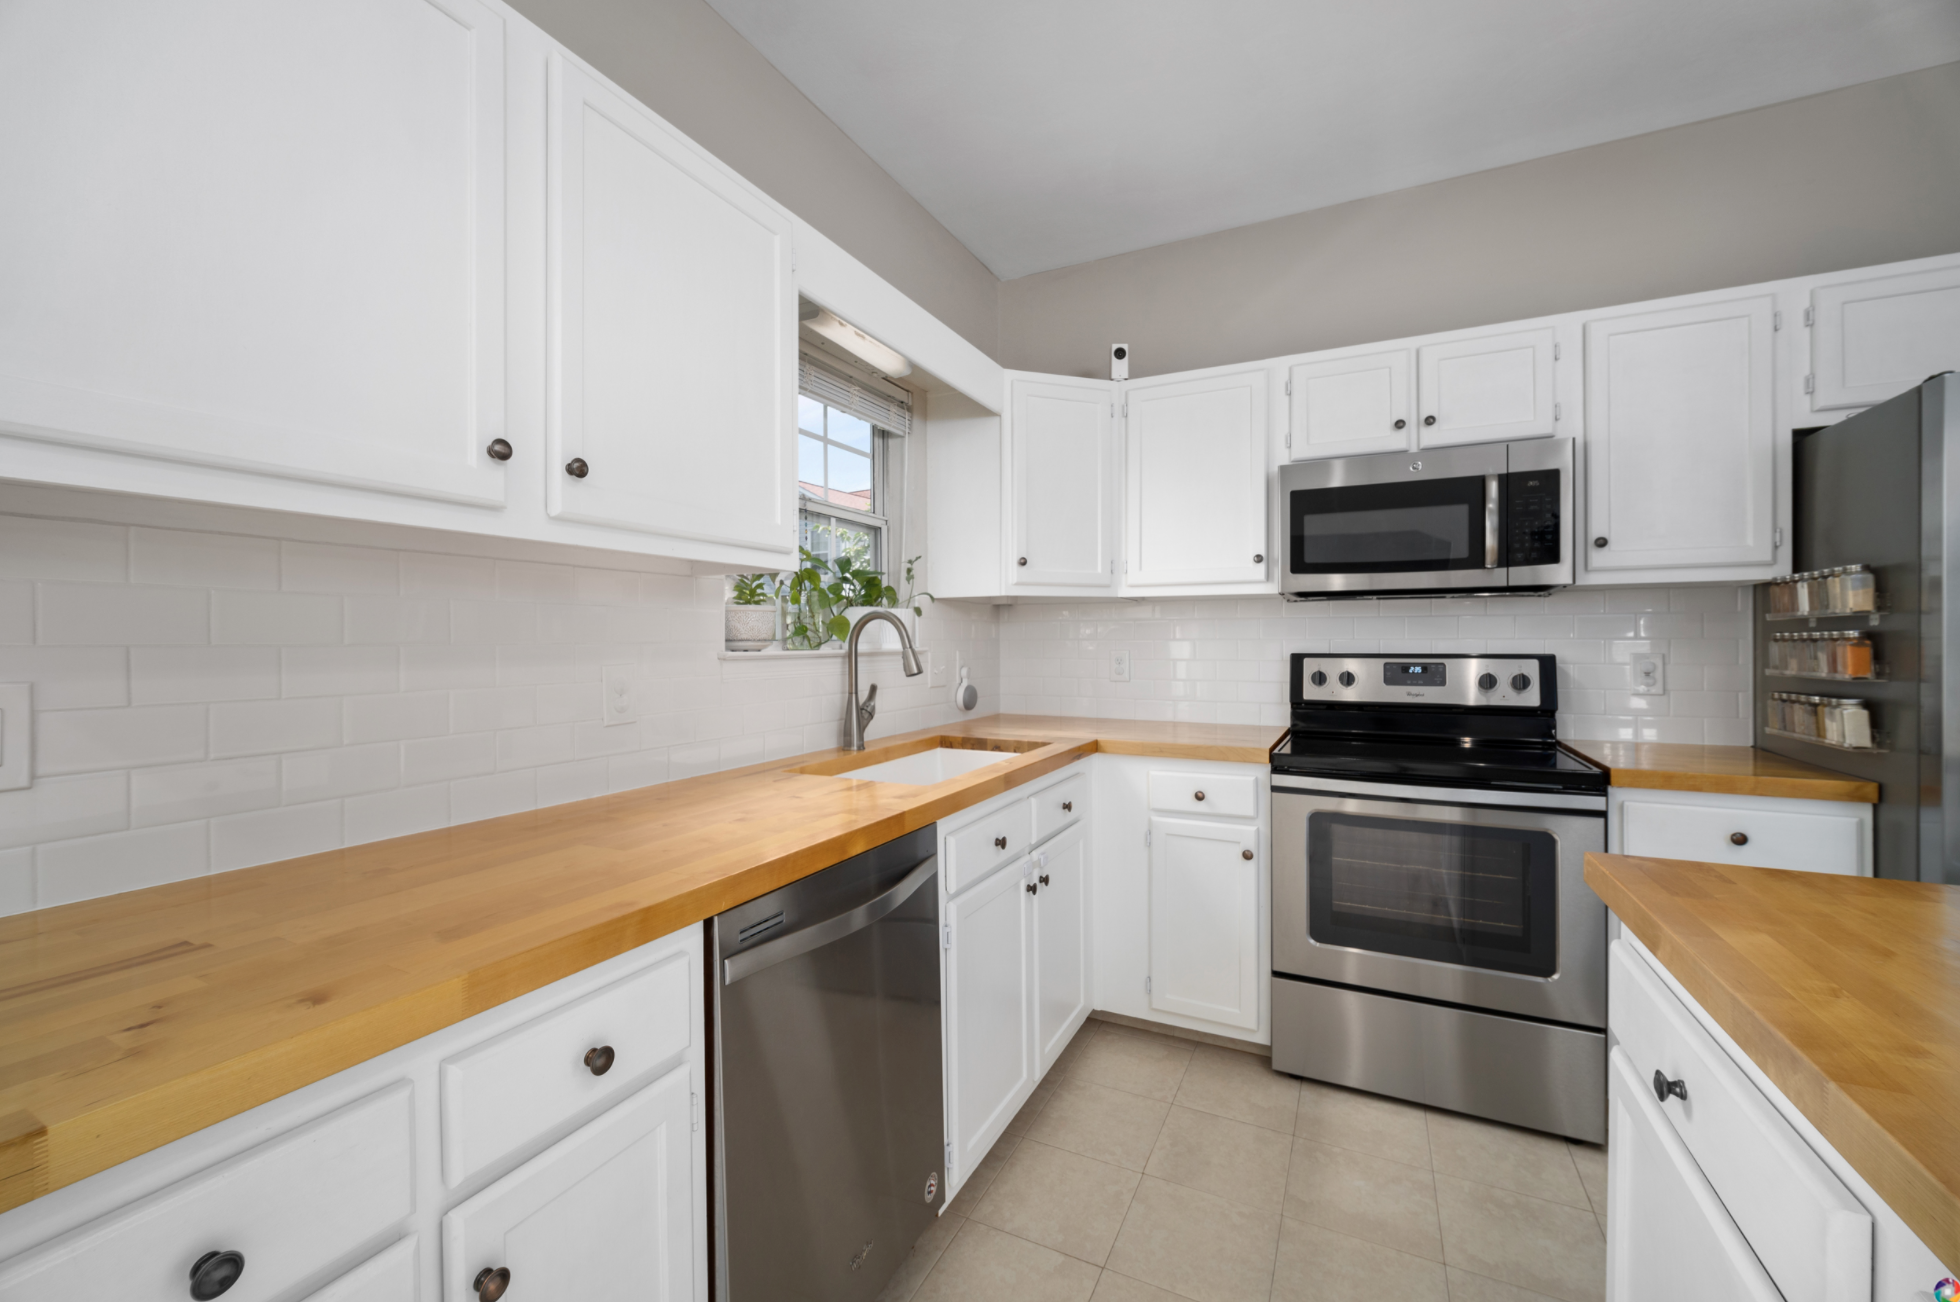 bright and airy kitchen remodel - white cabinets and butcher block counters with subway tile backsplash